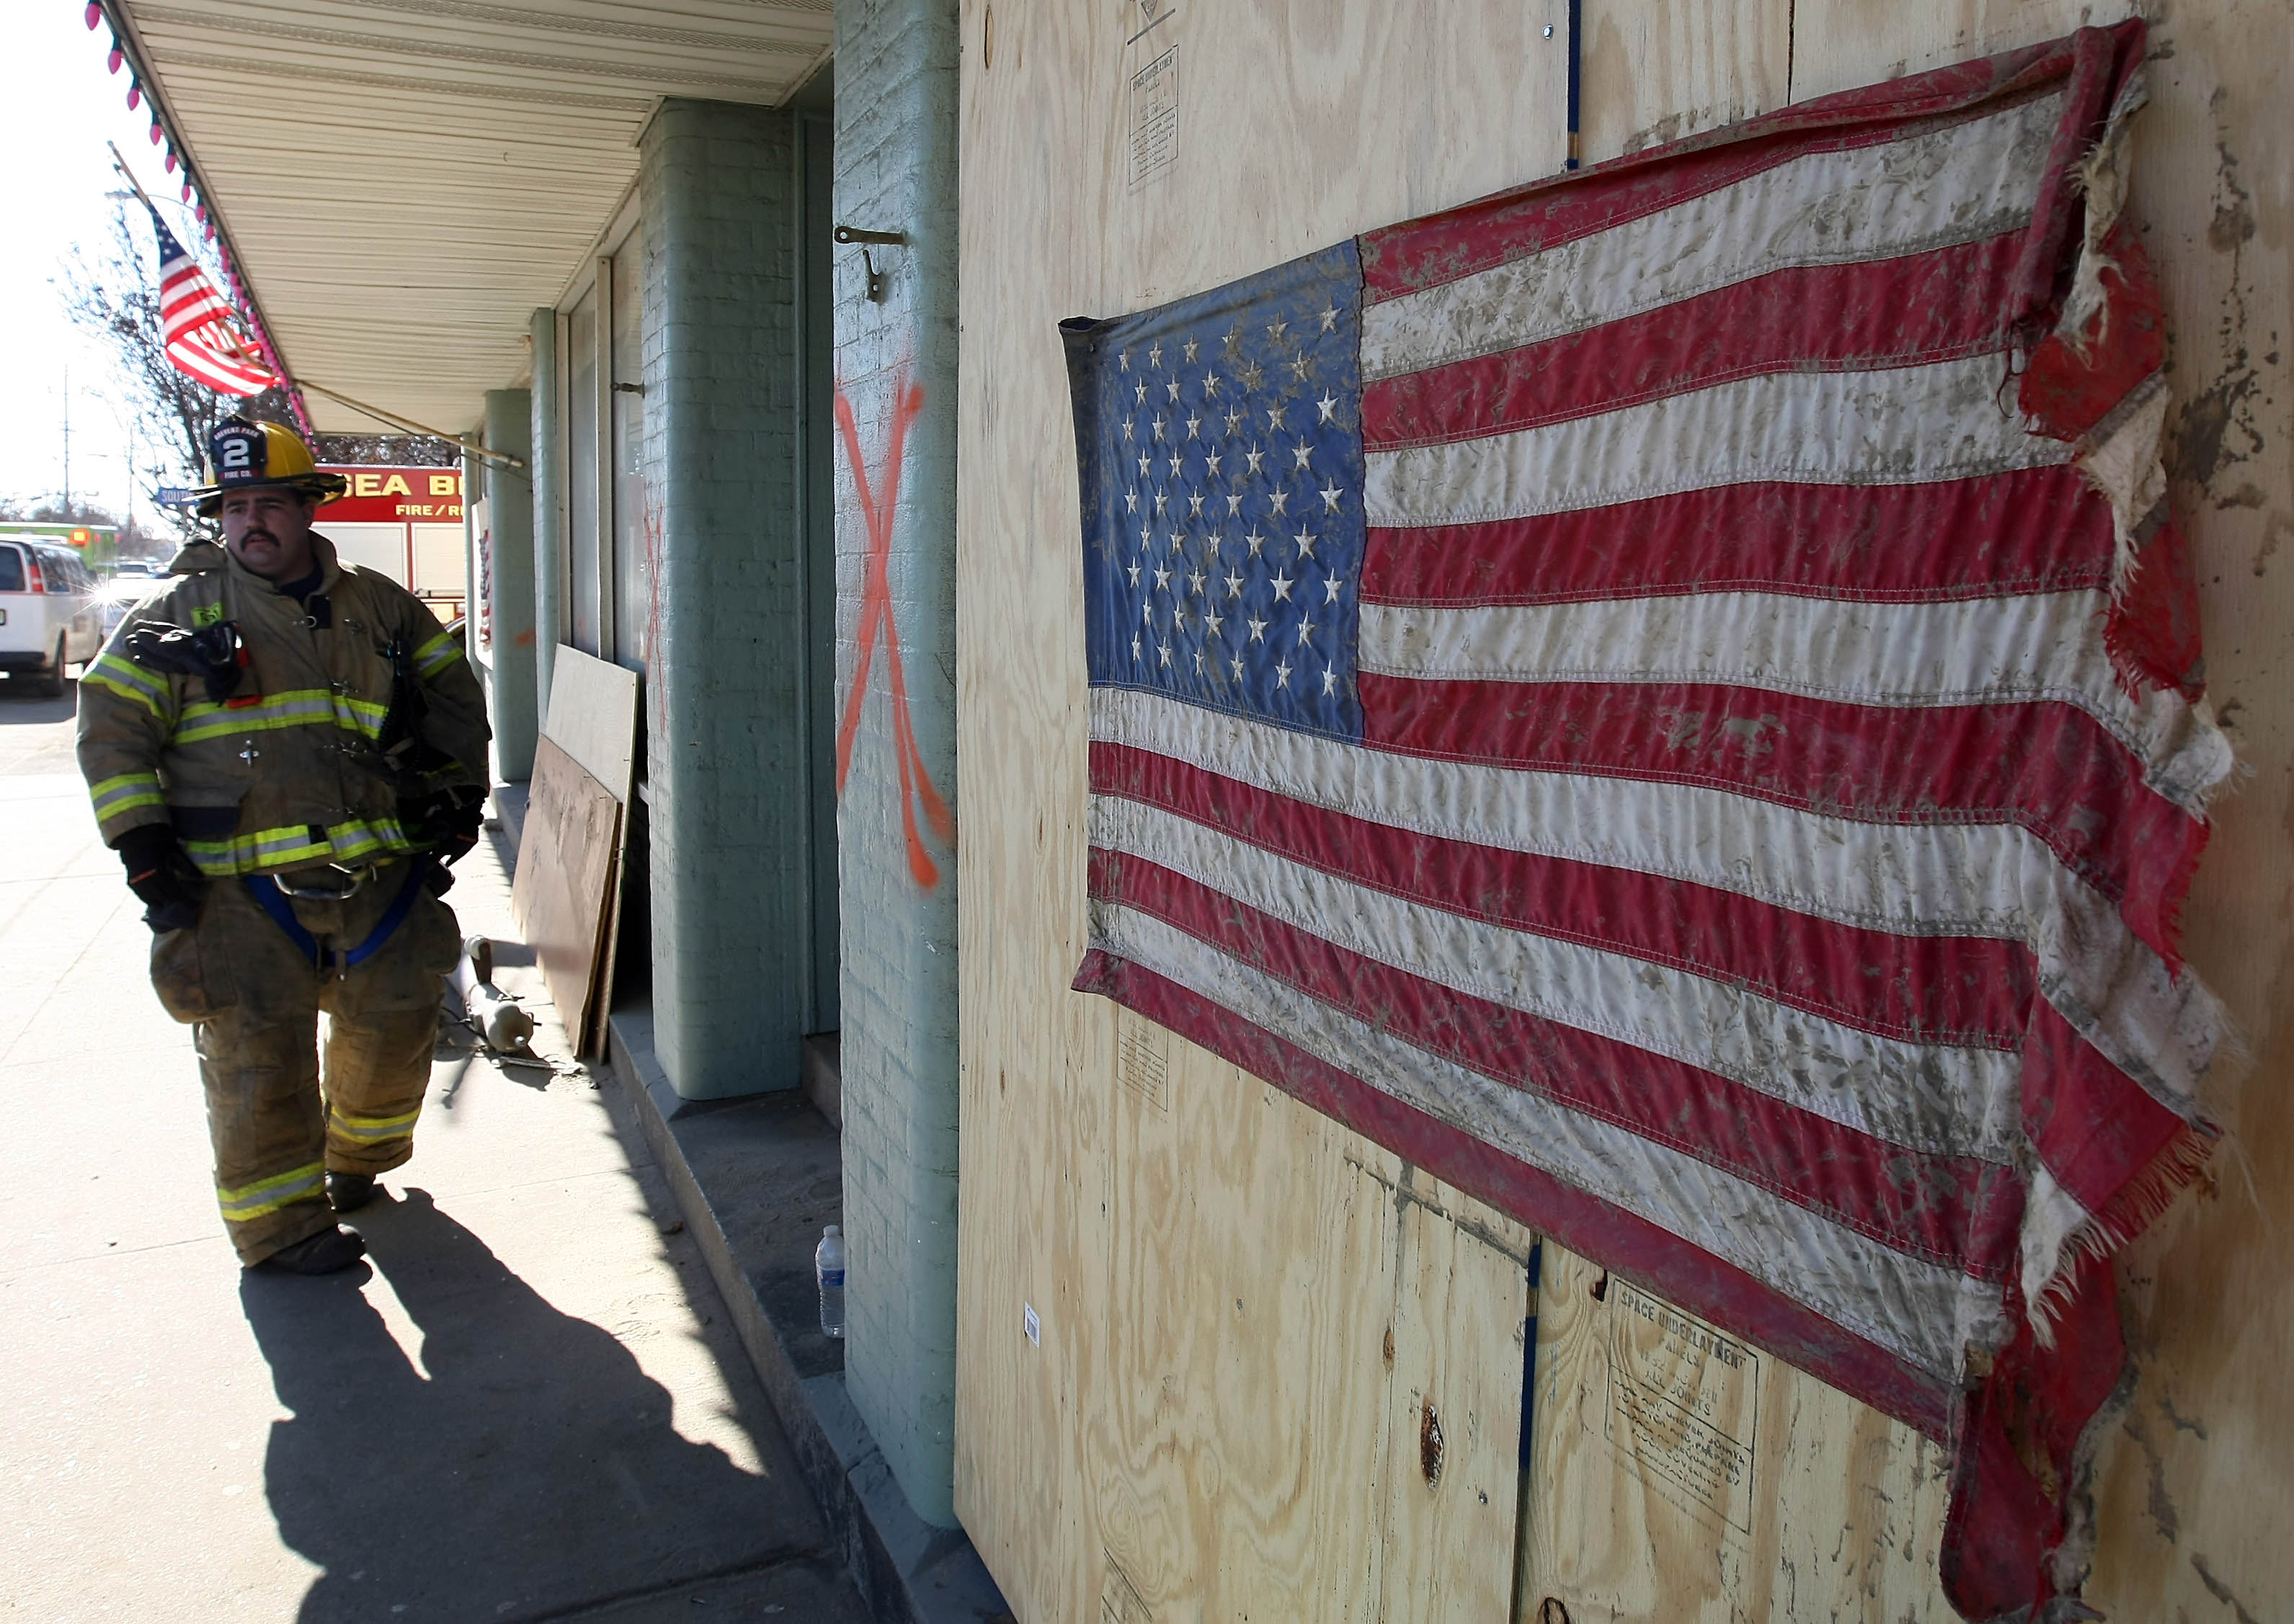 A fire fighter in New Jersey surveys the damage caused by Hurricane Sandy. (Photo courtesy Google Images)